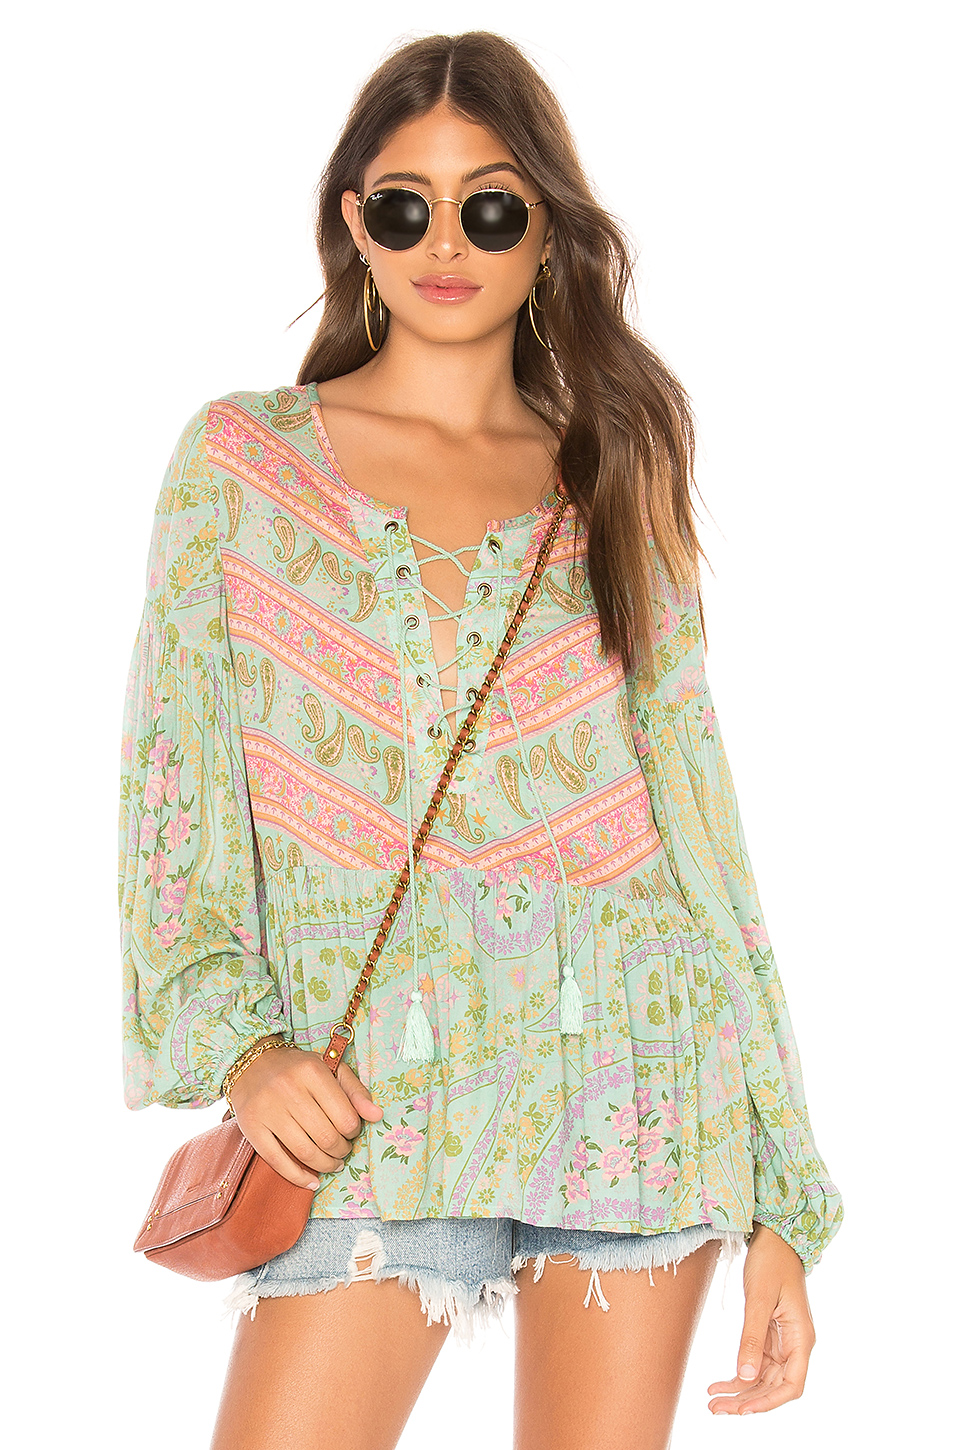 c824a676aef Buy Original Spell & The Gypsy Collective City Lights Blouse at ...